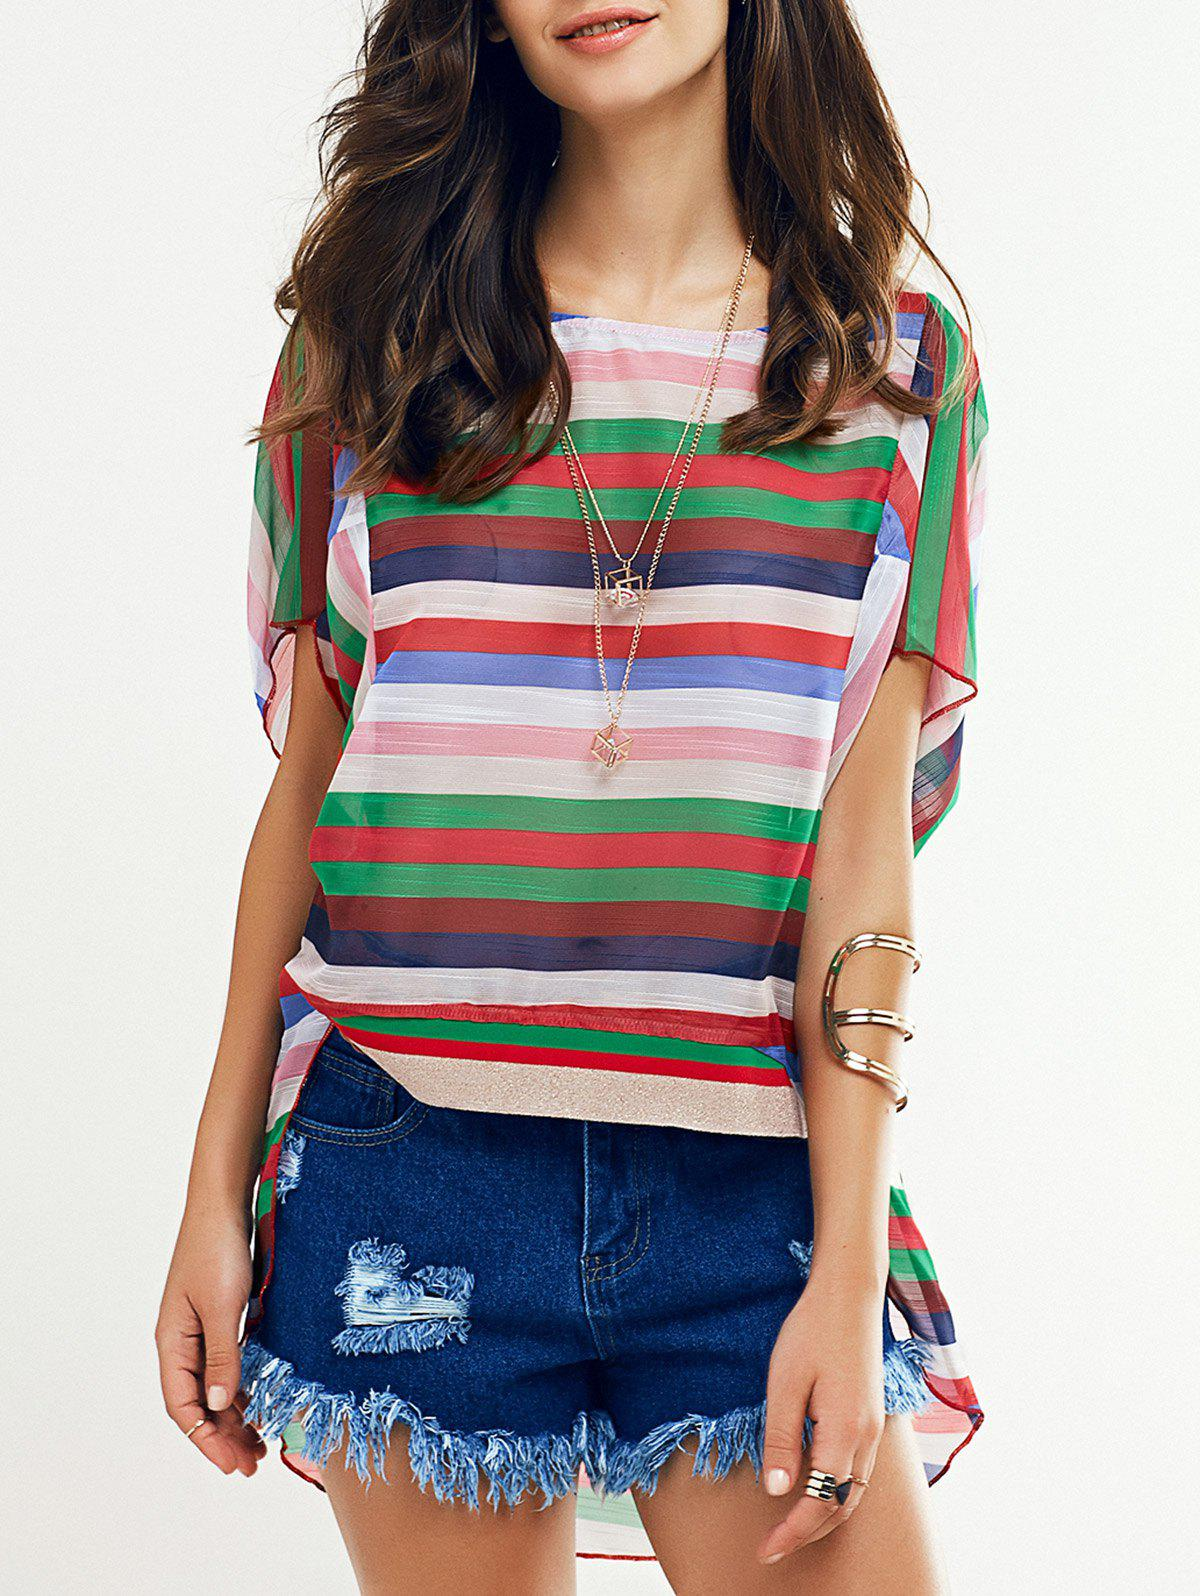 Colorful Batwing Sleeve Striped T-Shirt For Women - COLORMIX XL